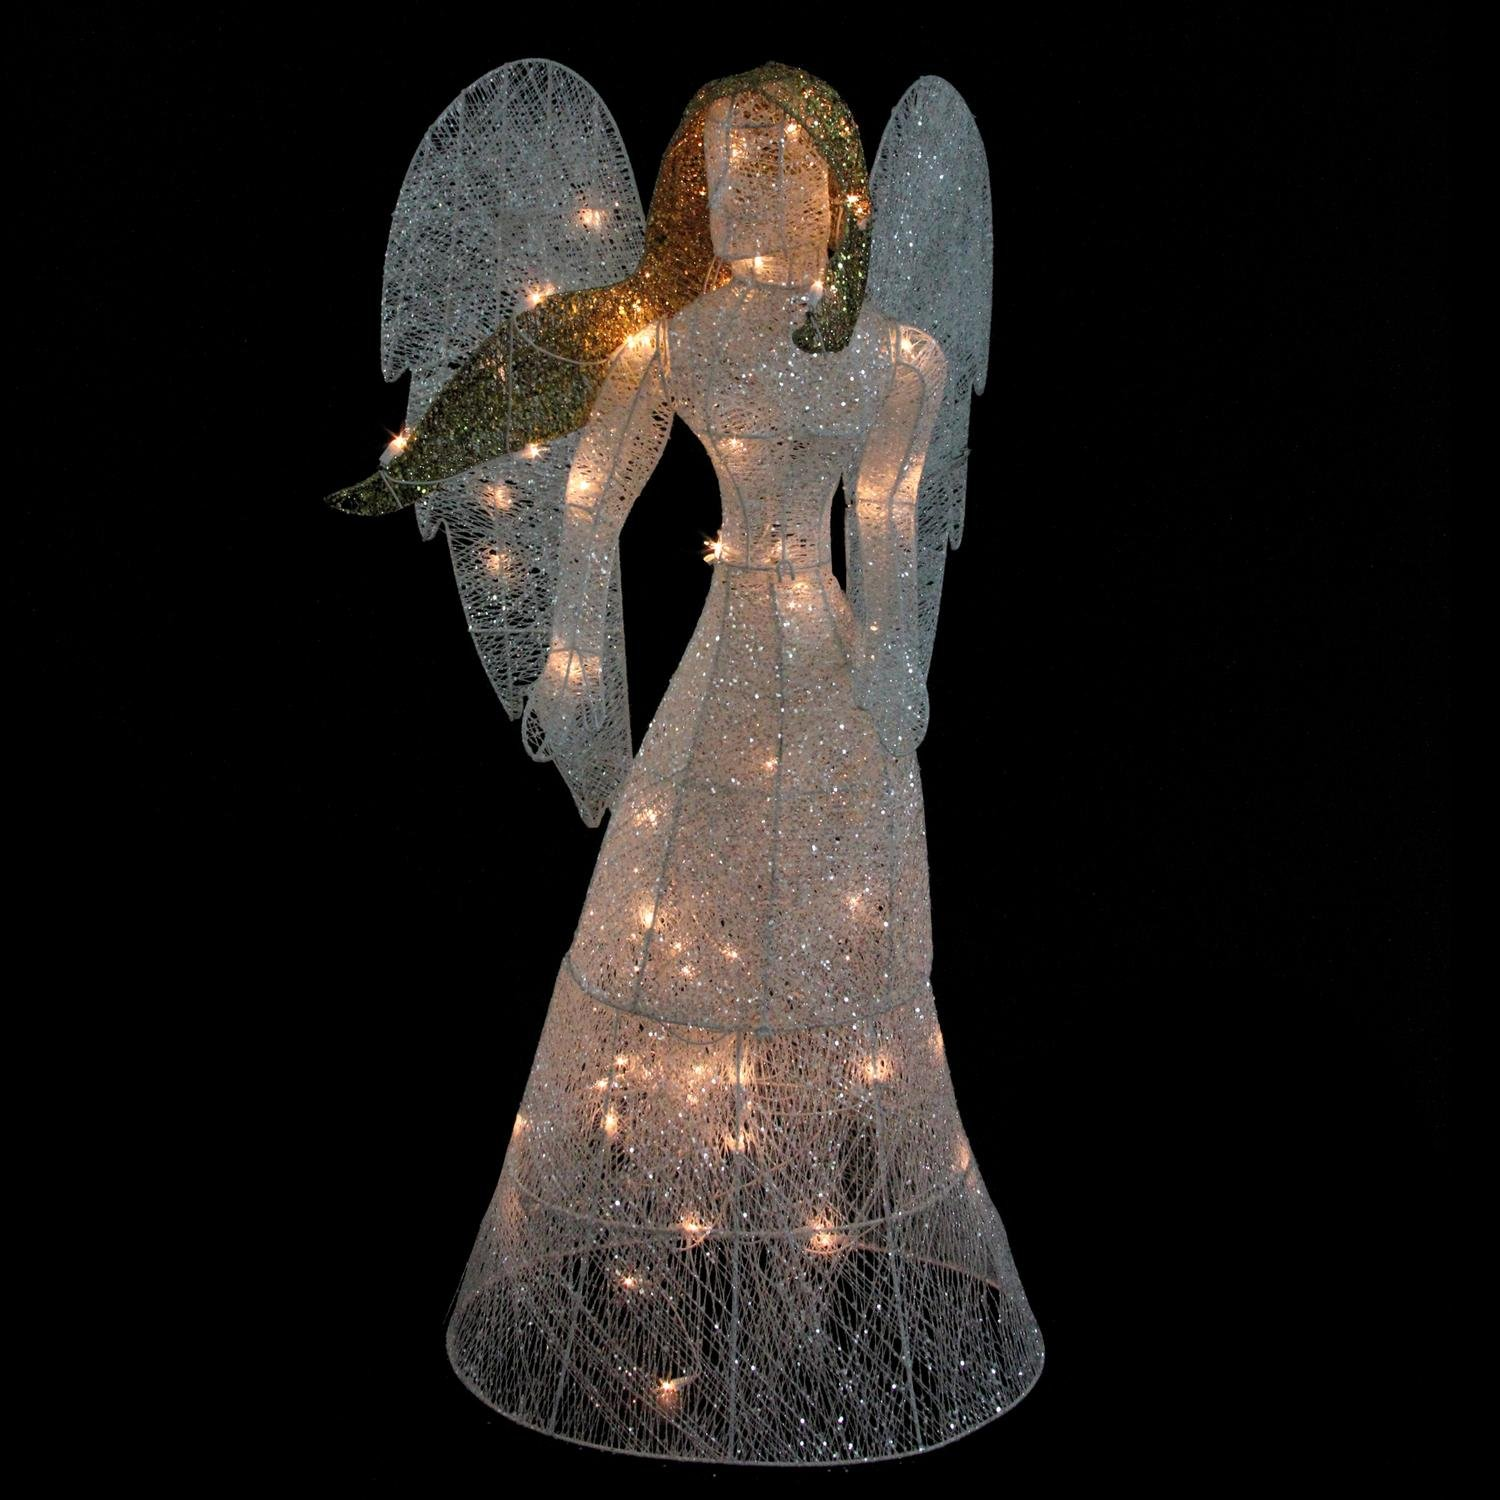 48'' LED Lighted White Glitter Angel Christmas Yard Art Decoration - Warm White Lights by Northlight